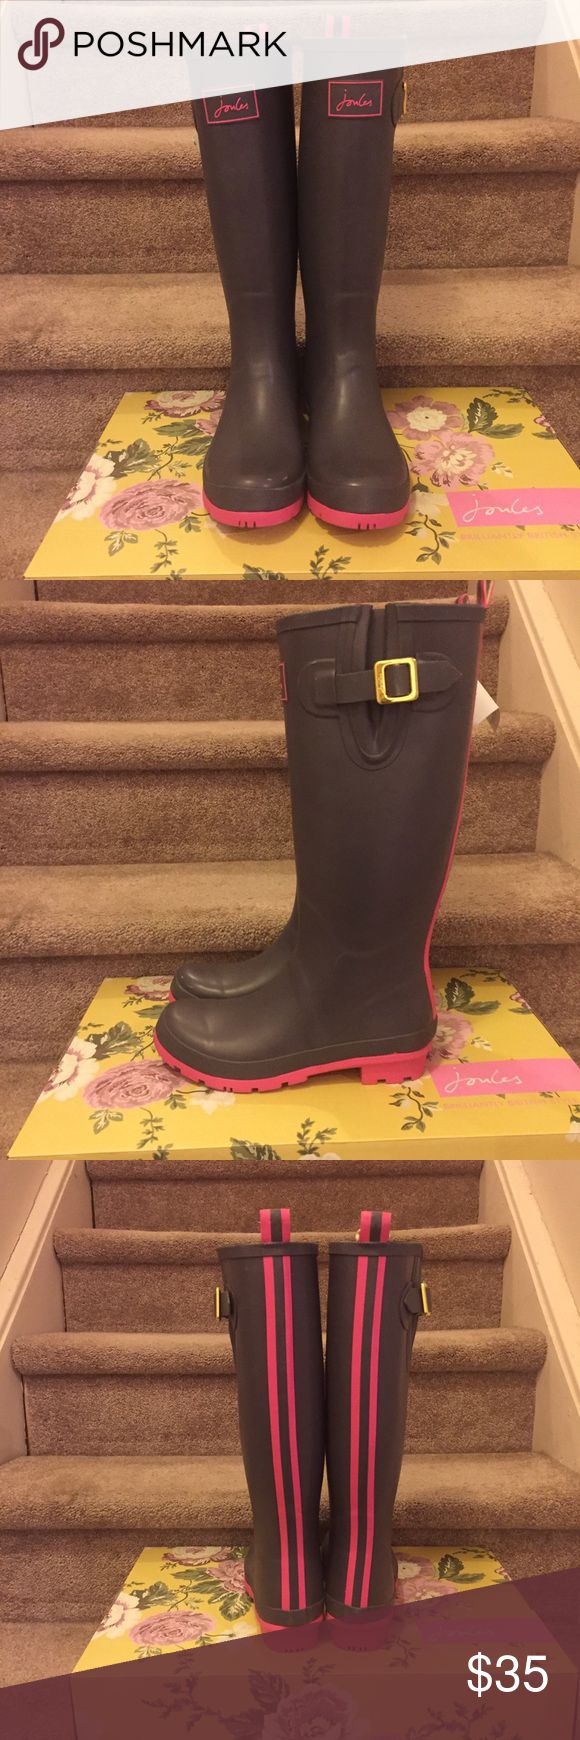 Gray & pink Joules wellies aka rain boots NWT Joules Wellies boots. Great color combination of gray and pink. Super cute on! Size is 7. Minor scruff on left shoe. Please see last photo for a more of close up of scruff. Great pair of rainboots! please feel free to ask any questions. Joules Shoes Winter & Rain Boots